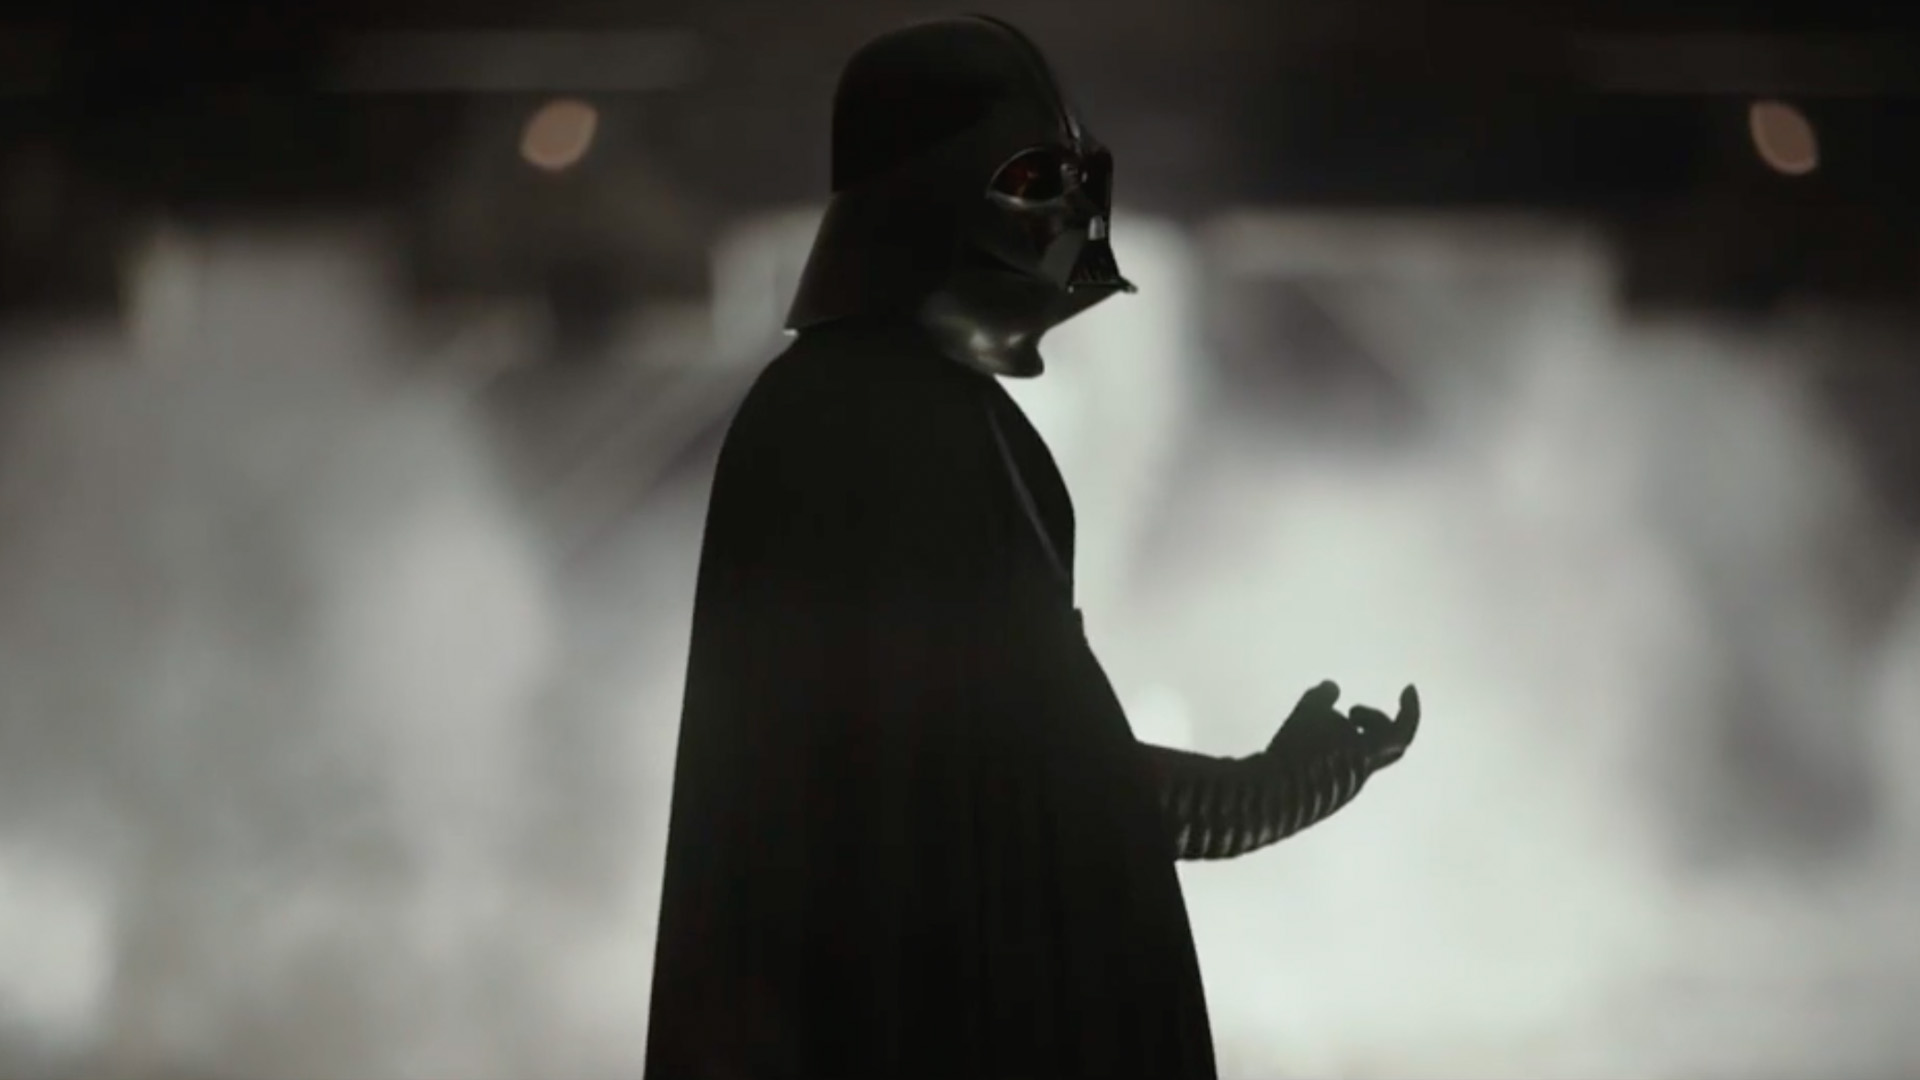 image Darth vader shows true skills with the lightsaber